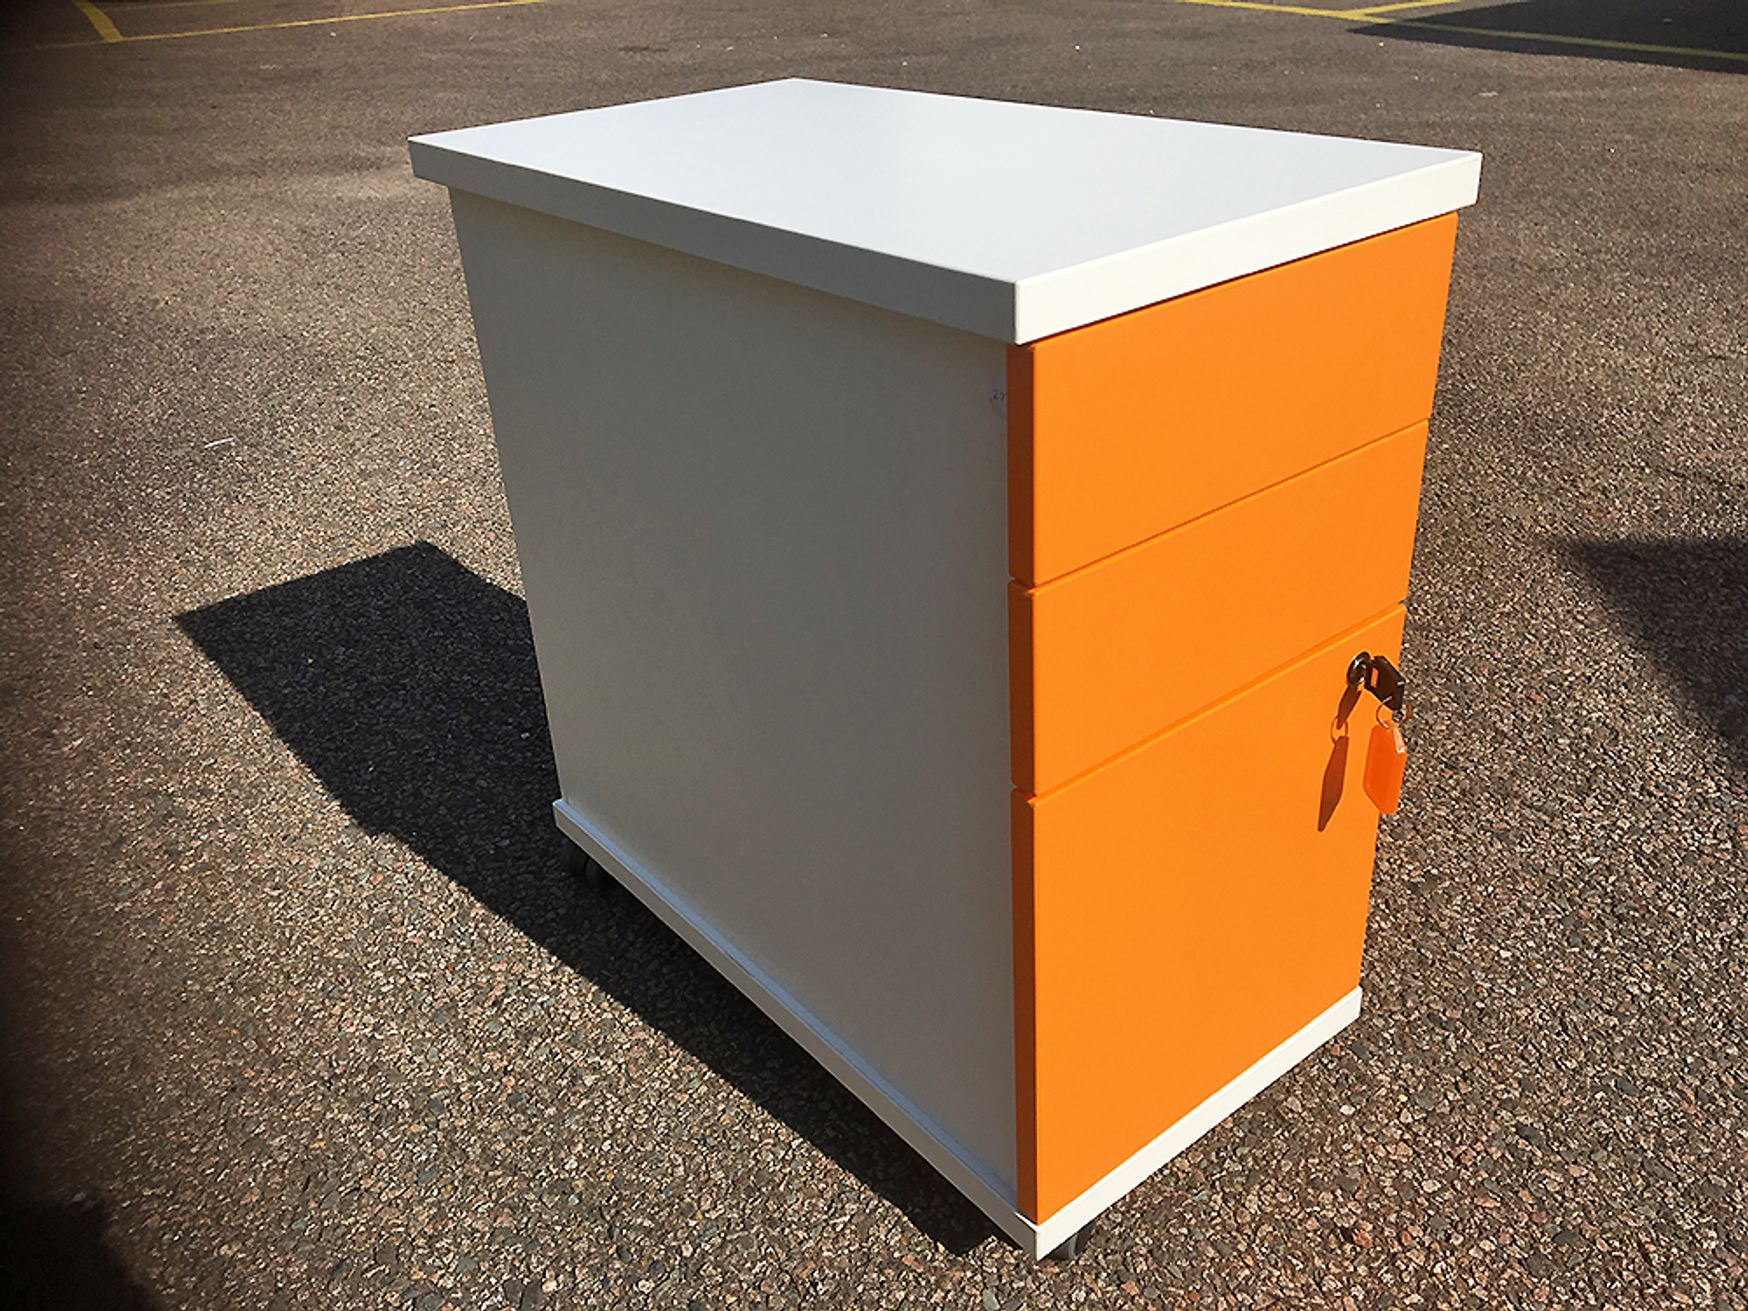 Used Slim-line 3-drawer pedestals with white carcass and orange drawer fronts Dimensions: 320mm wide x 580mm deep x 600mm high